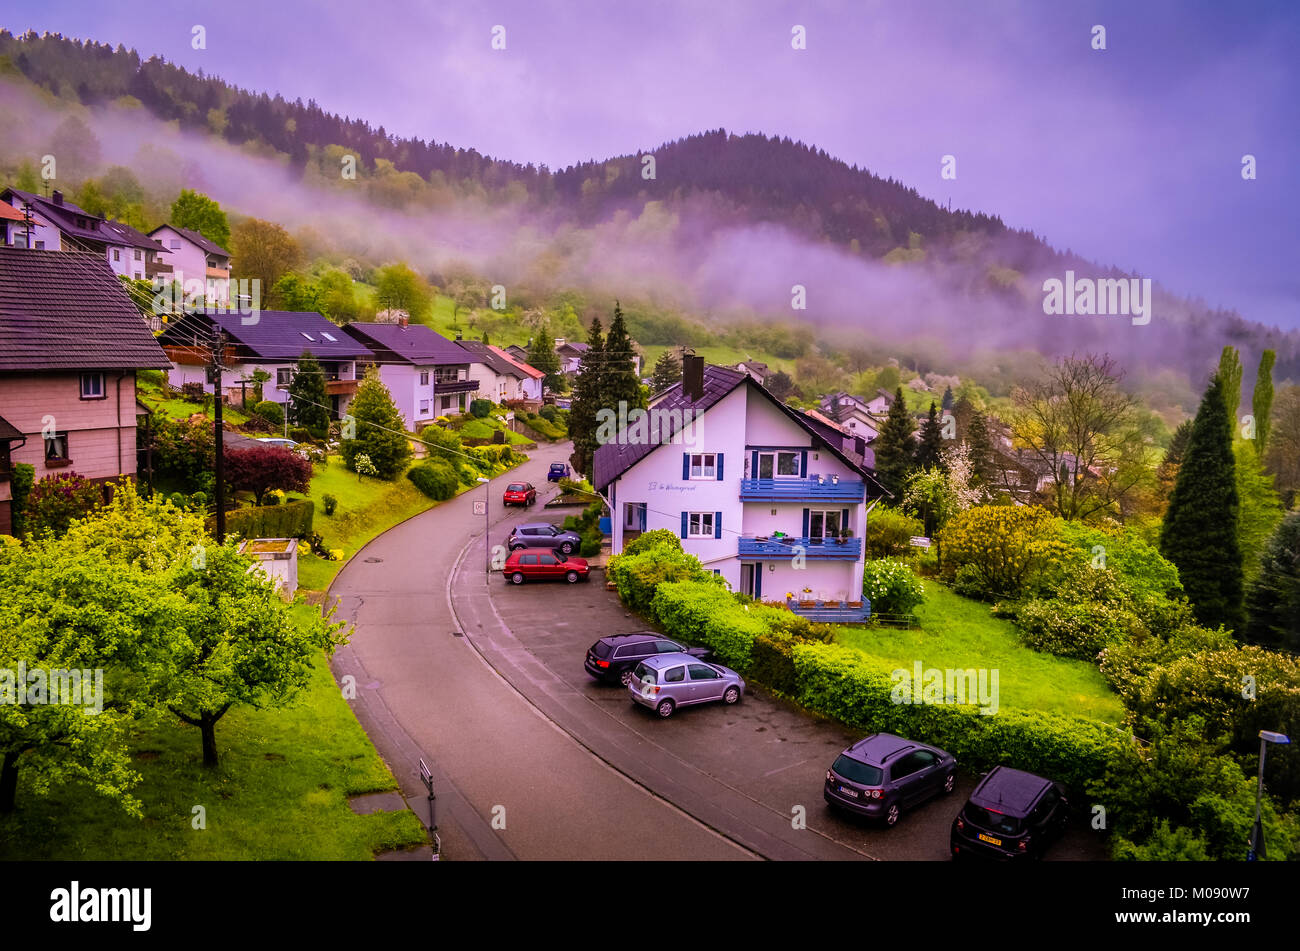 Sleepy town somewhere in Black Forest in South Germany, like brothers Grimm fairy takes famous for spas and cuckoo - Stock Image